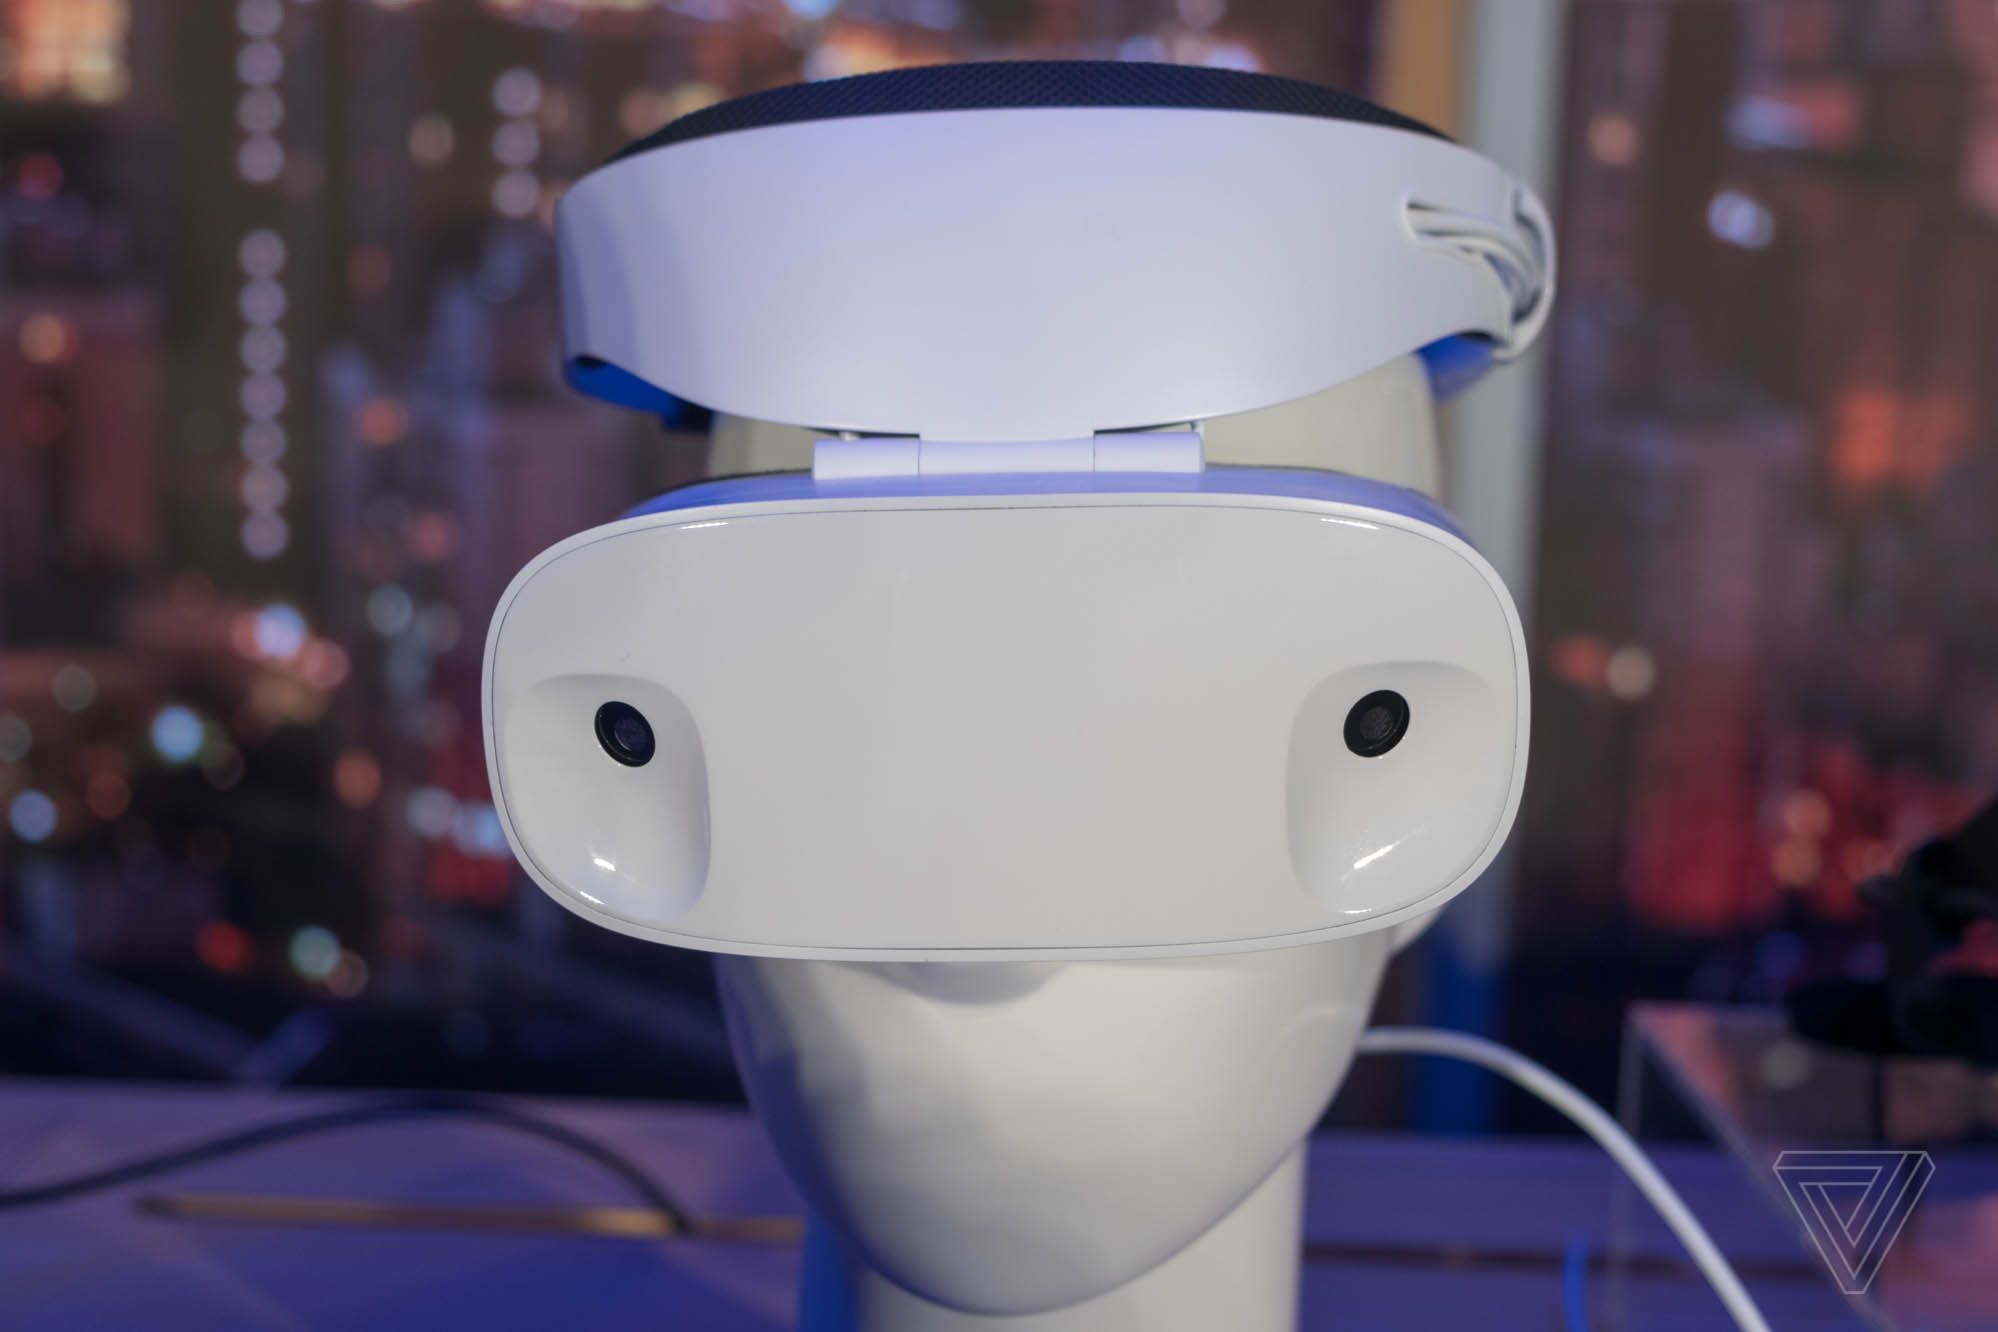 The Windows Mixed Reality headsets don't look totally dorky — Surprise